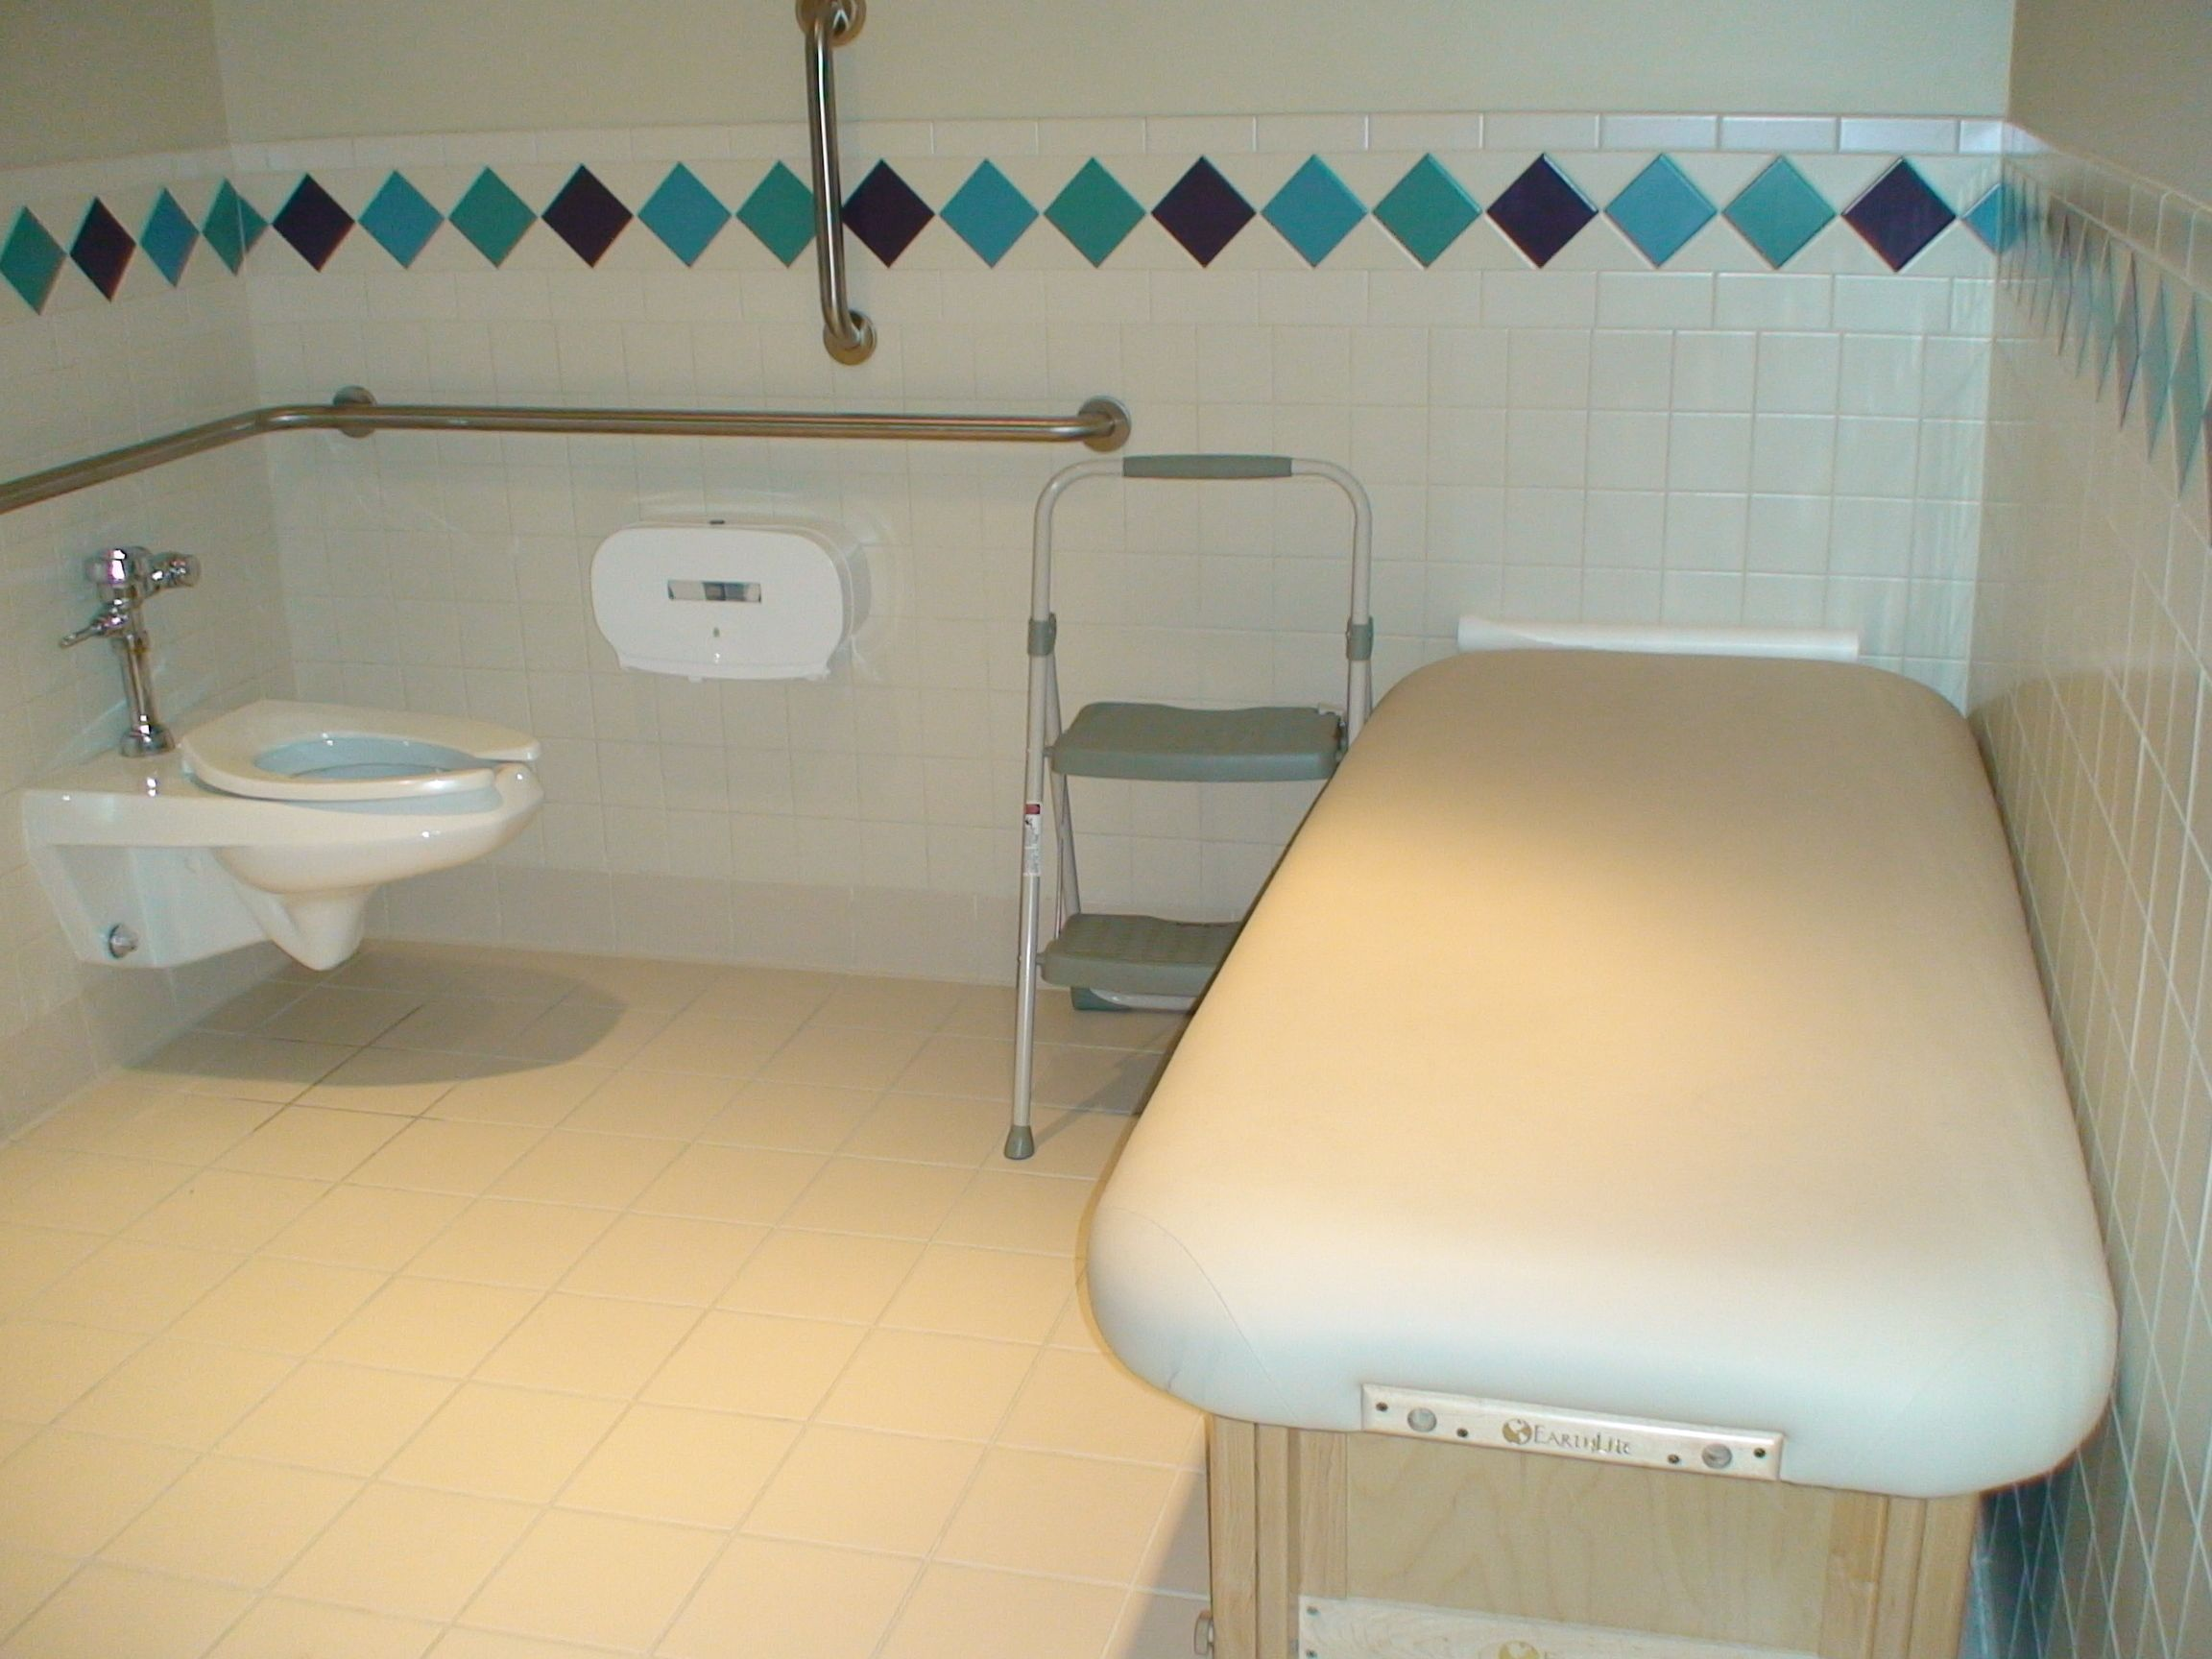 Special Needs Ministry Bathroom And Toileting Policies